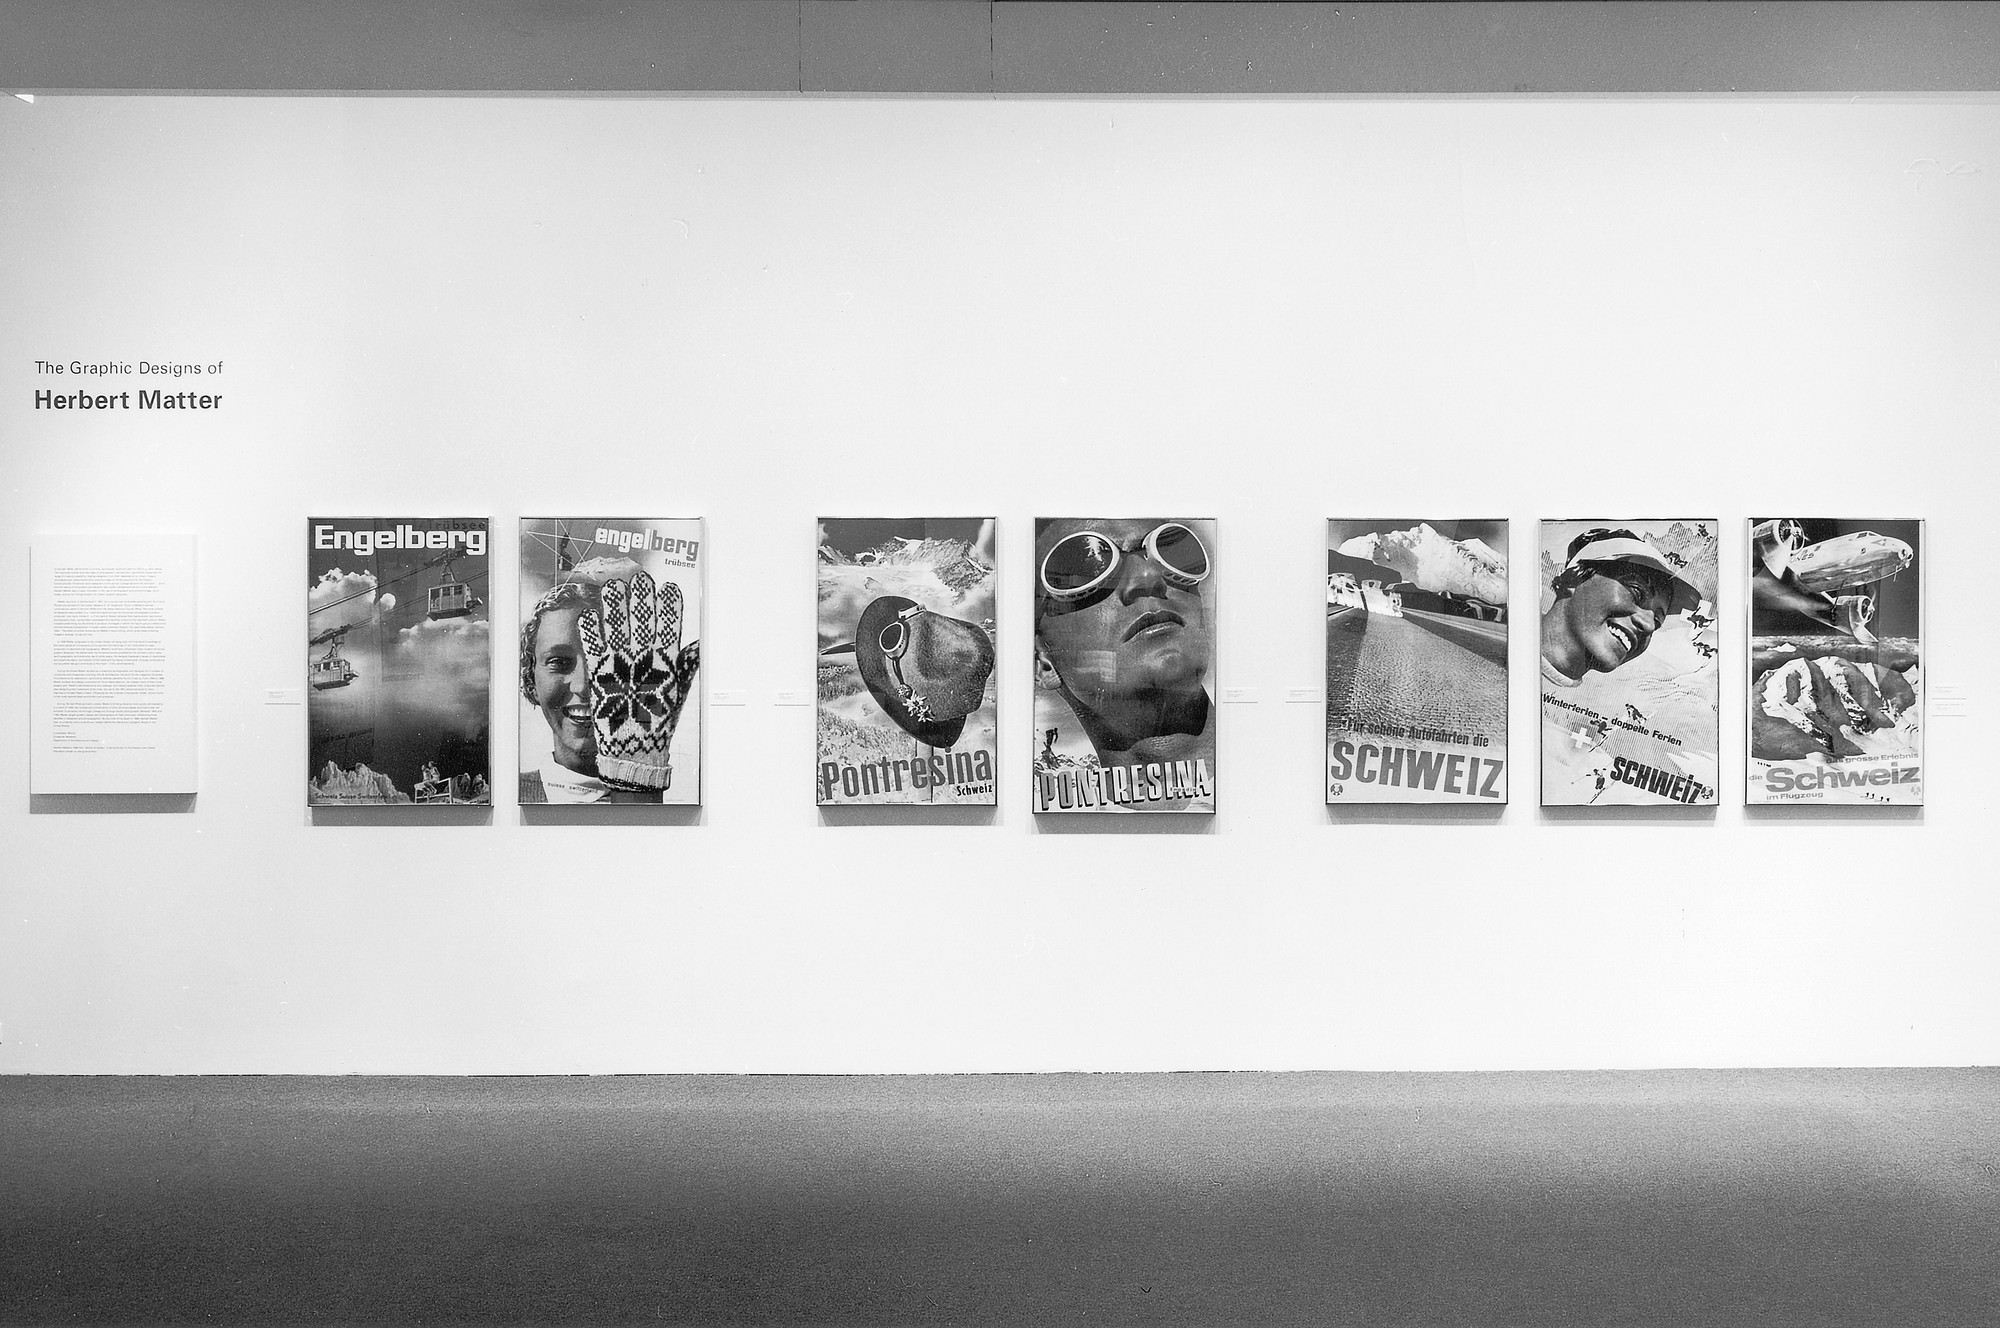 Installation view of the graphic designs of herbert matter at the museum of modern art